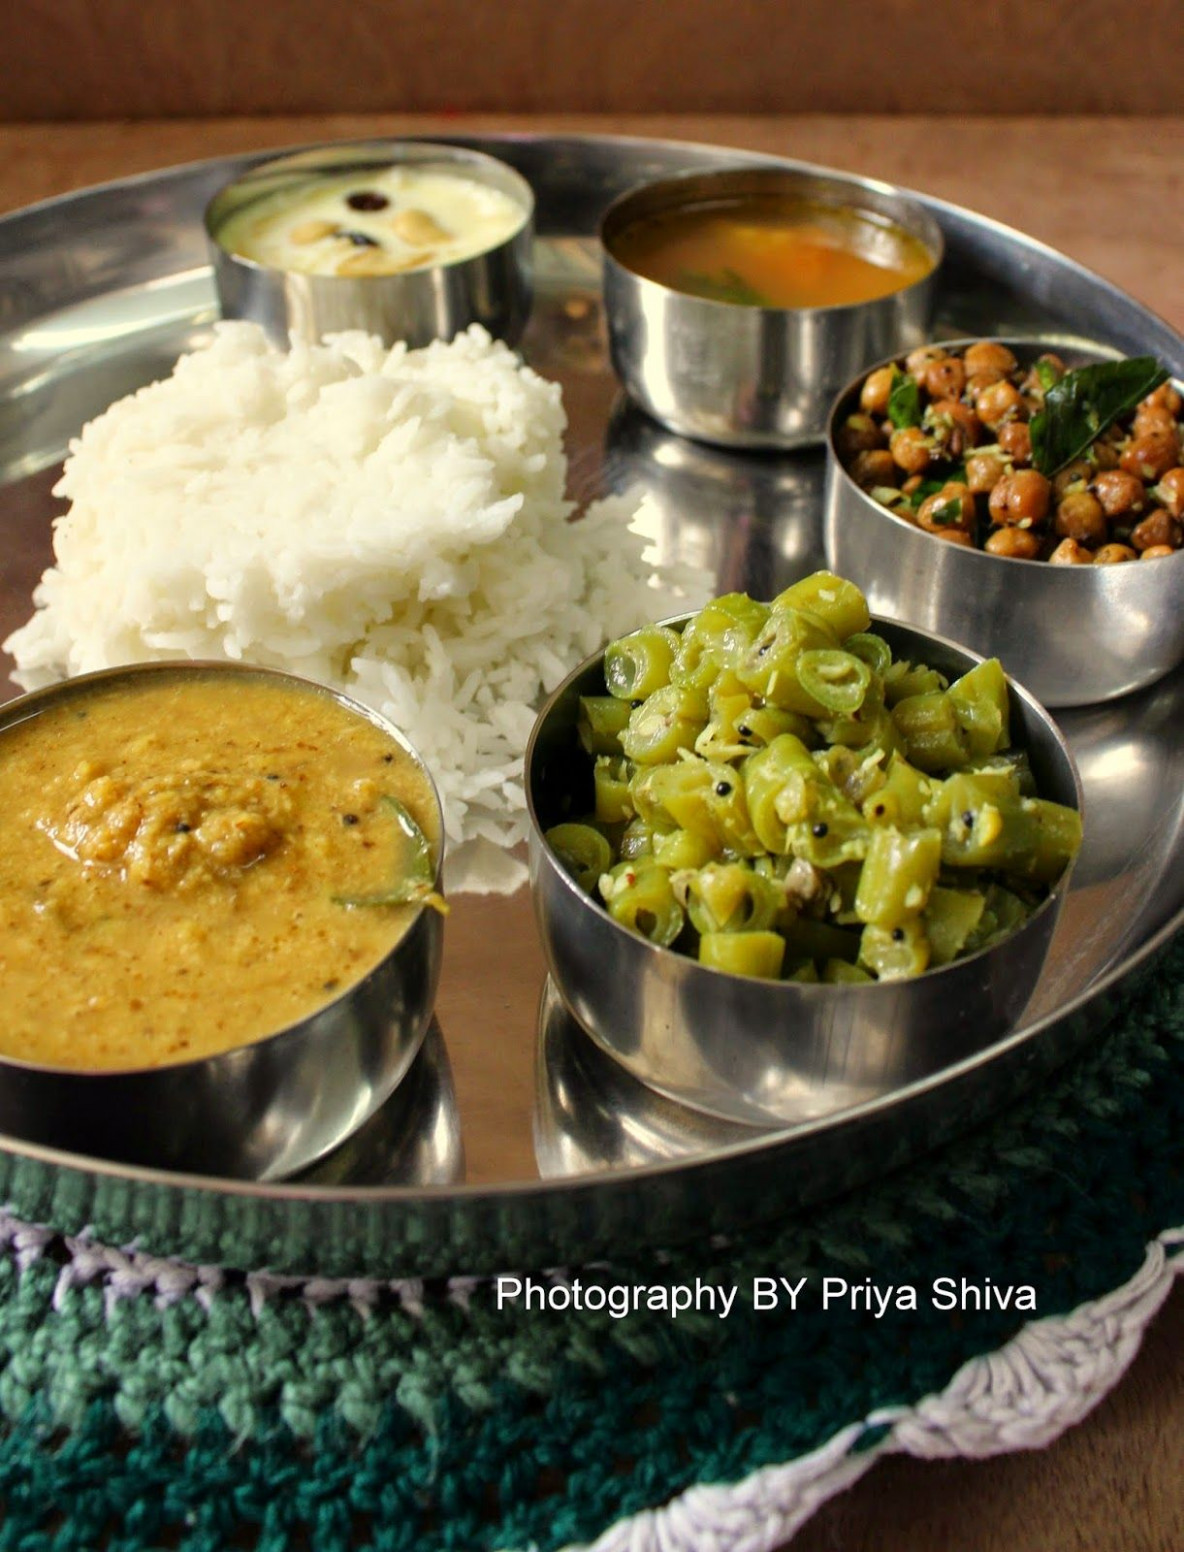 Lunch Menu - 13 / South Indian Thali | East indian food ..